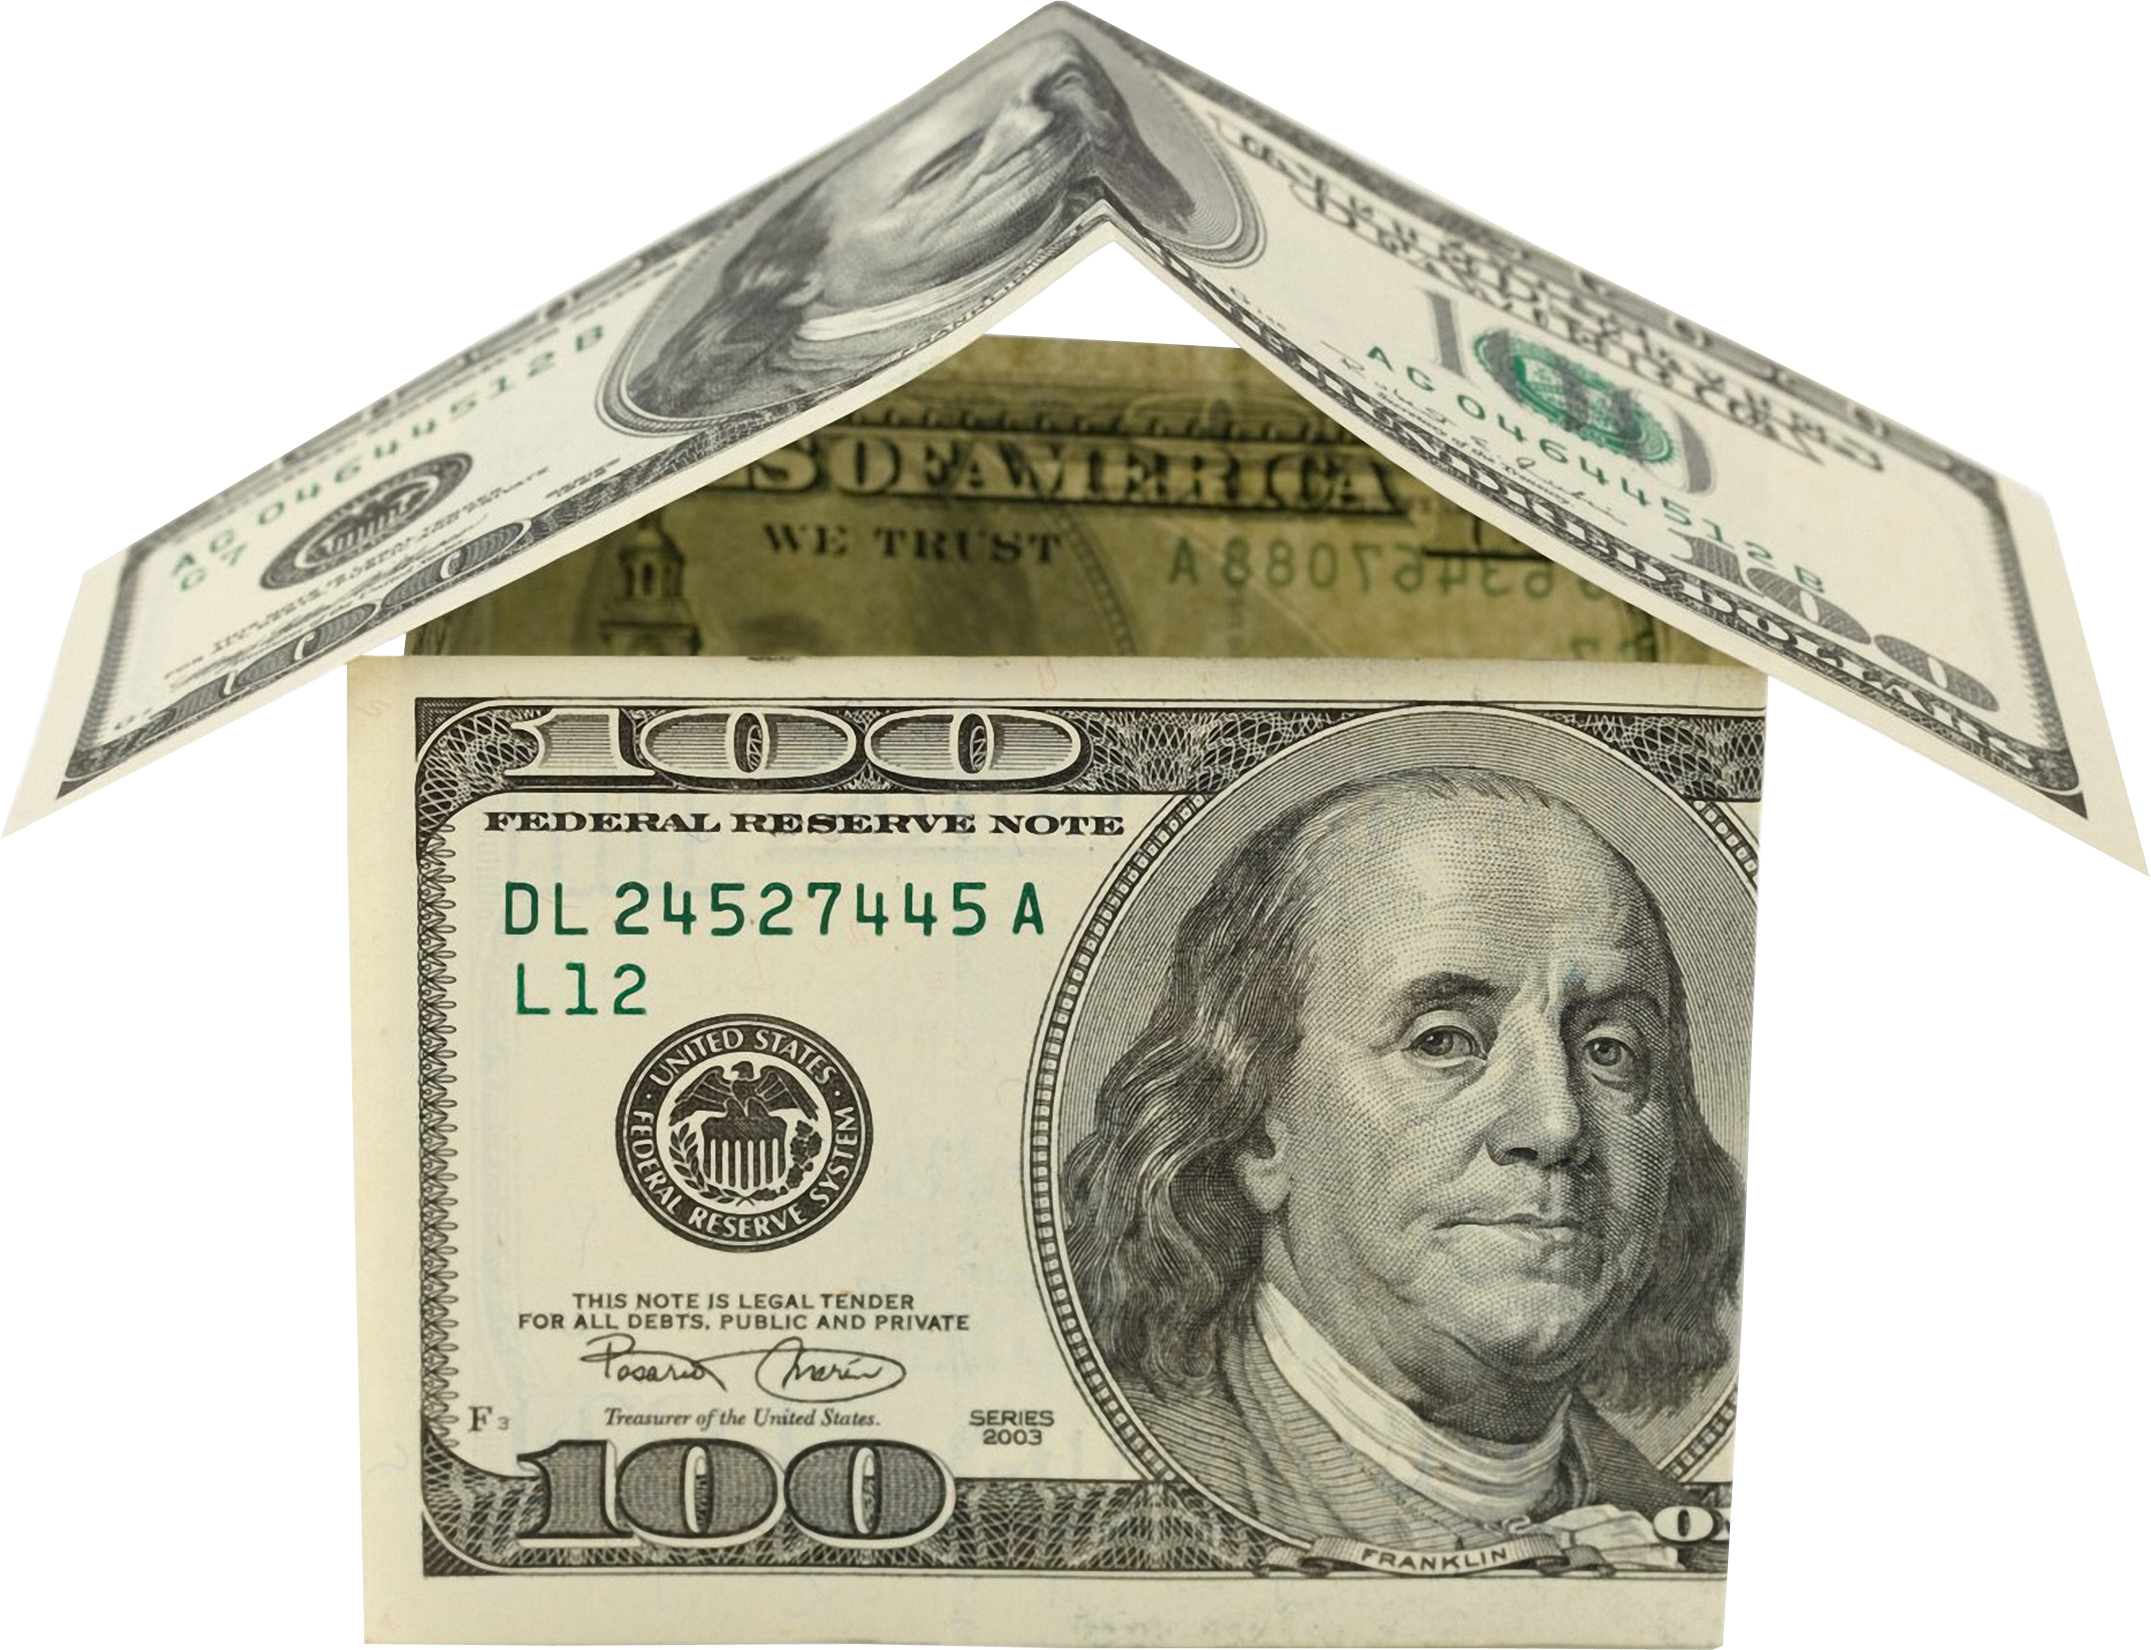 Paper money clipart dollar bills clipart black and white stock House Made of Dollars | Isolated Stock Photo by noBACKS.com clipart black and white stock